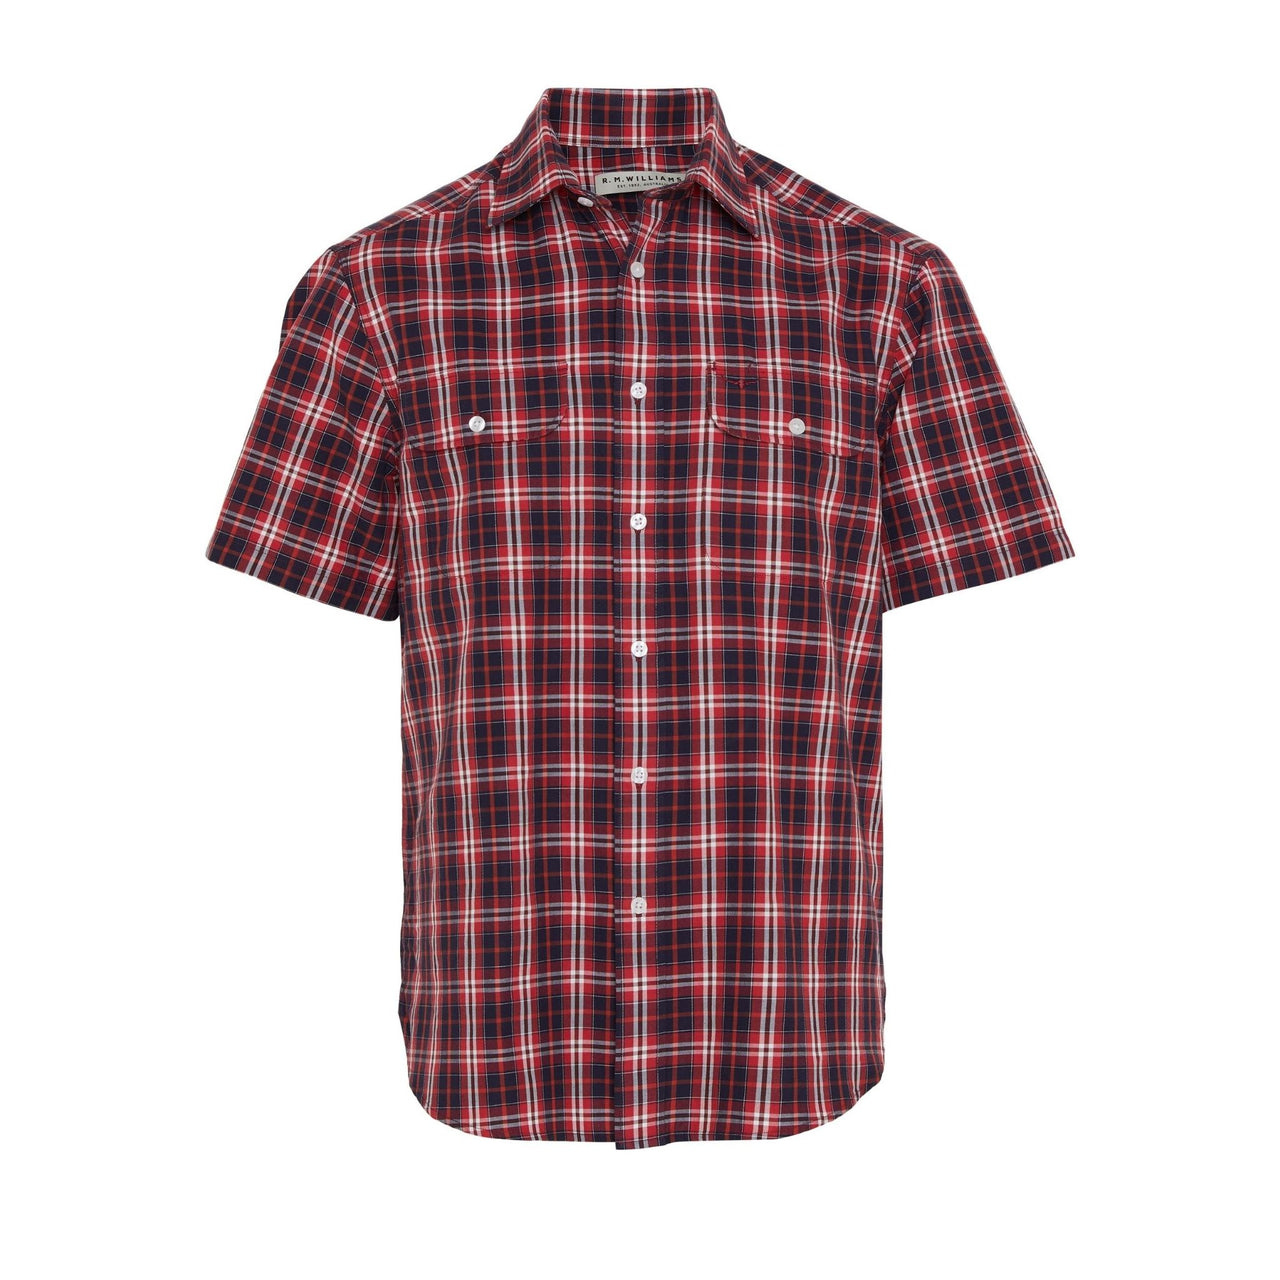 R-M-Williams-Fraser-Shirt-Red-Navy-White